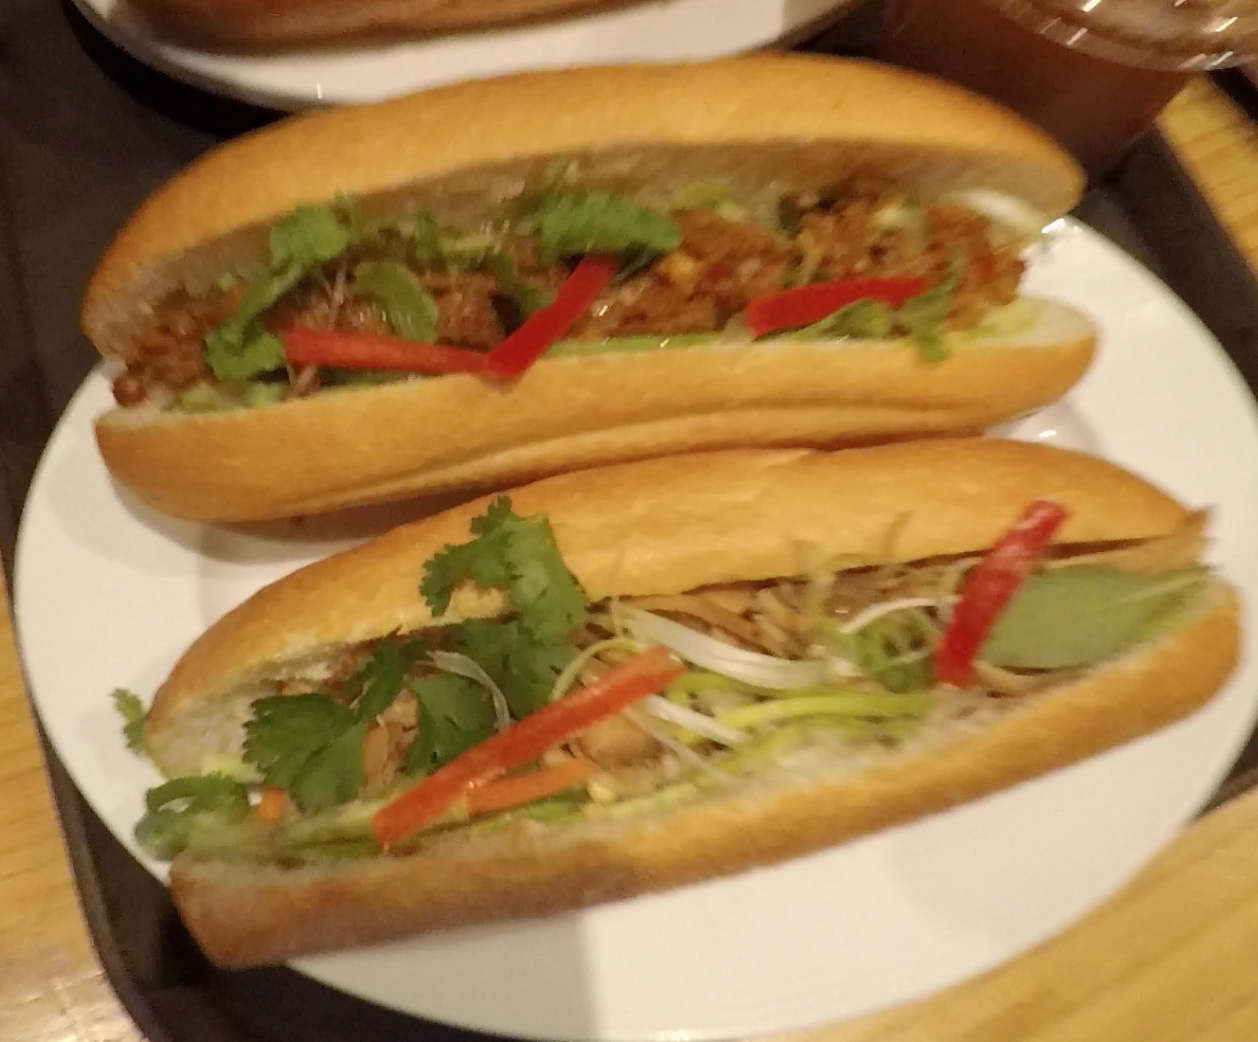 Bánh mì from the restaurant!